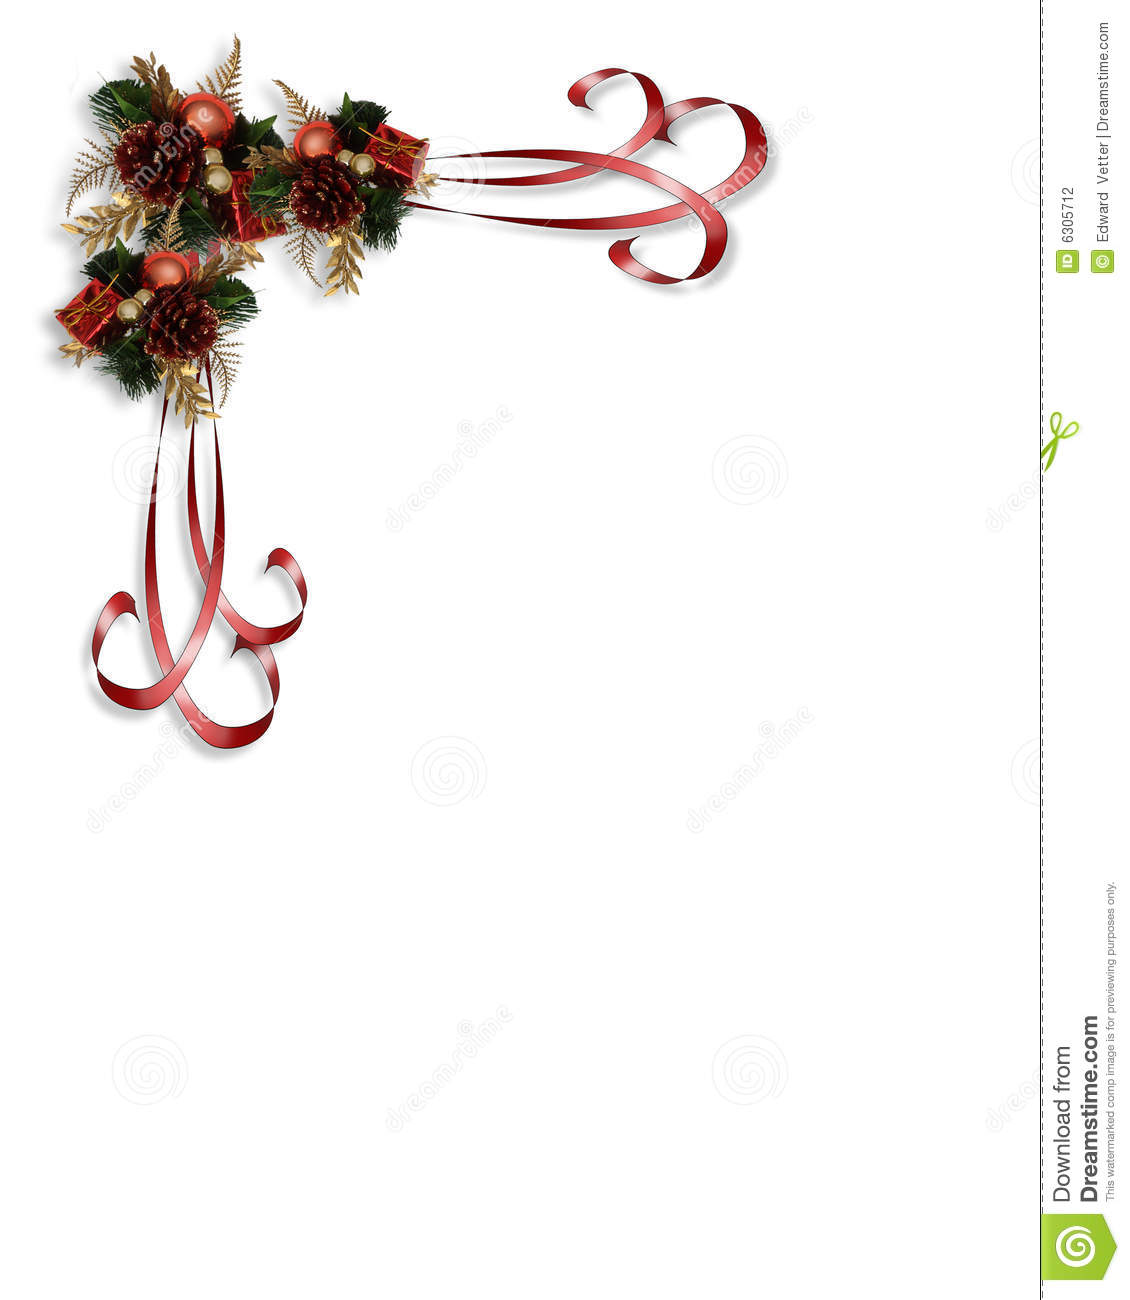 Image and illustration composition Christmas design with holly leaves ...